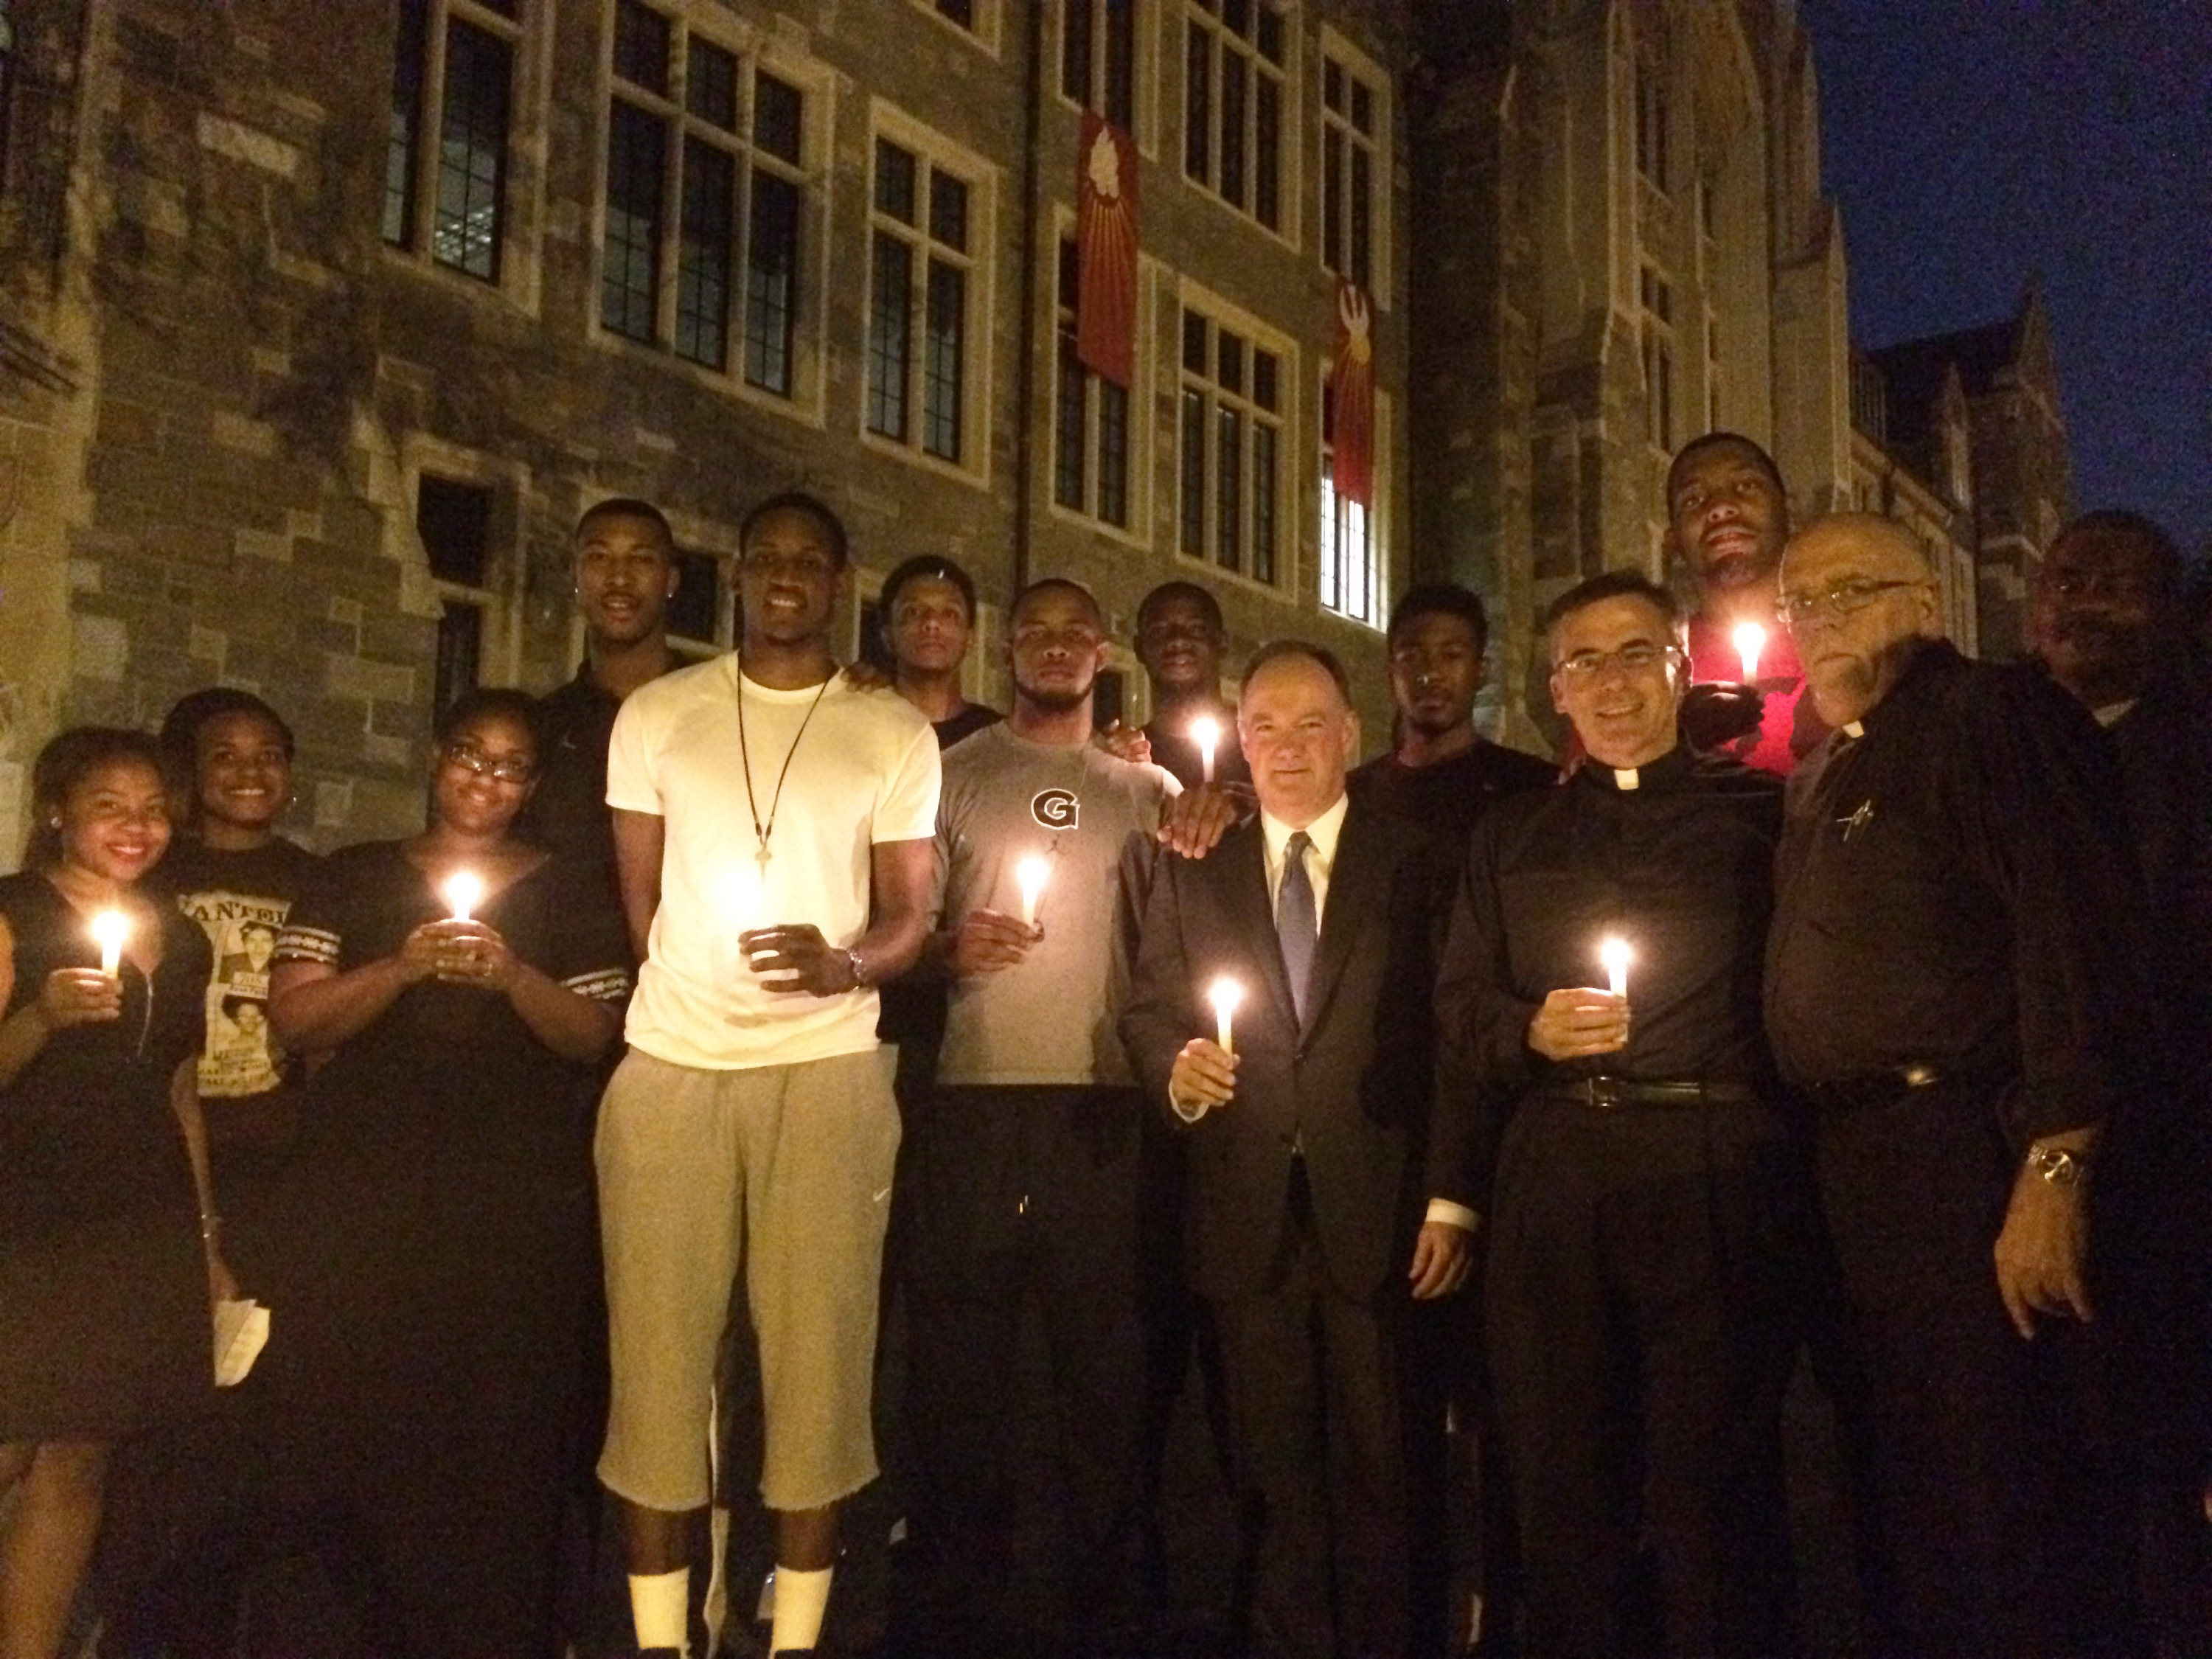 Members of the Georgetown men's basketball team attended a candlelight vigil hosted by the Black Leadership Forum on Tuesday night to remember slain Missouri teen Michael Brown.